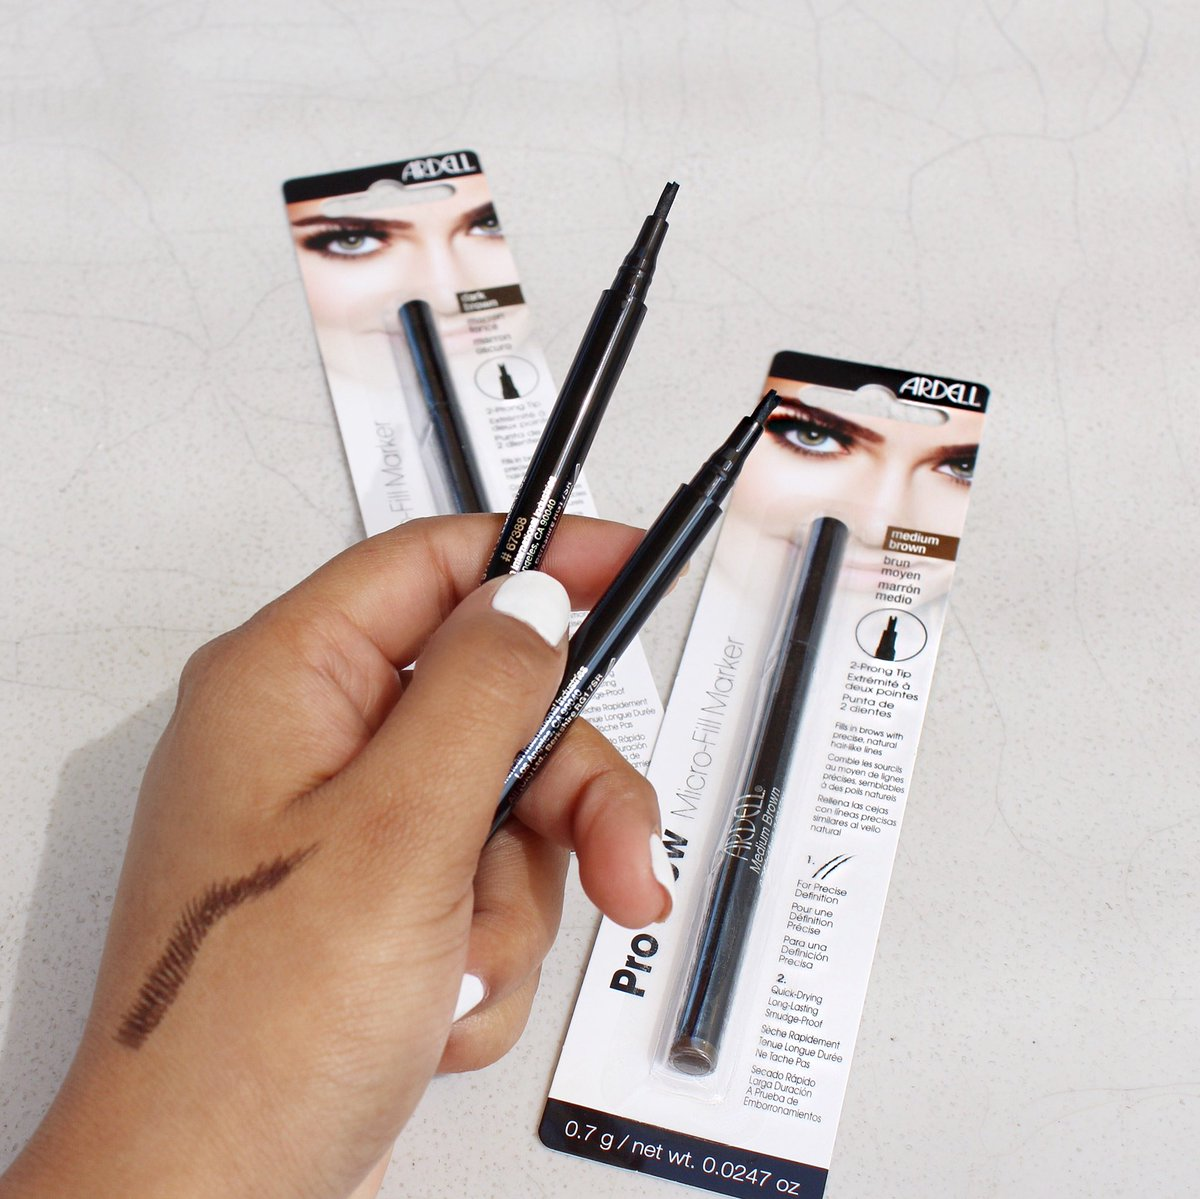 74f0caaed1a Try our Brow Micro-Fill Marker! This brow product has a smudge-proof  formula that clings to both skin and hair! Current shades: Medium Brown & Dark  Brown.